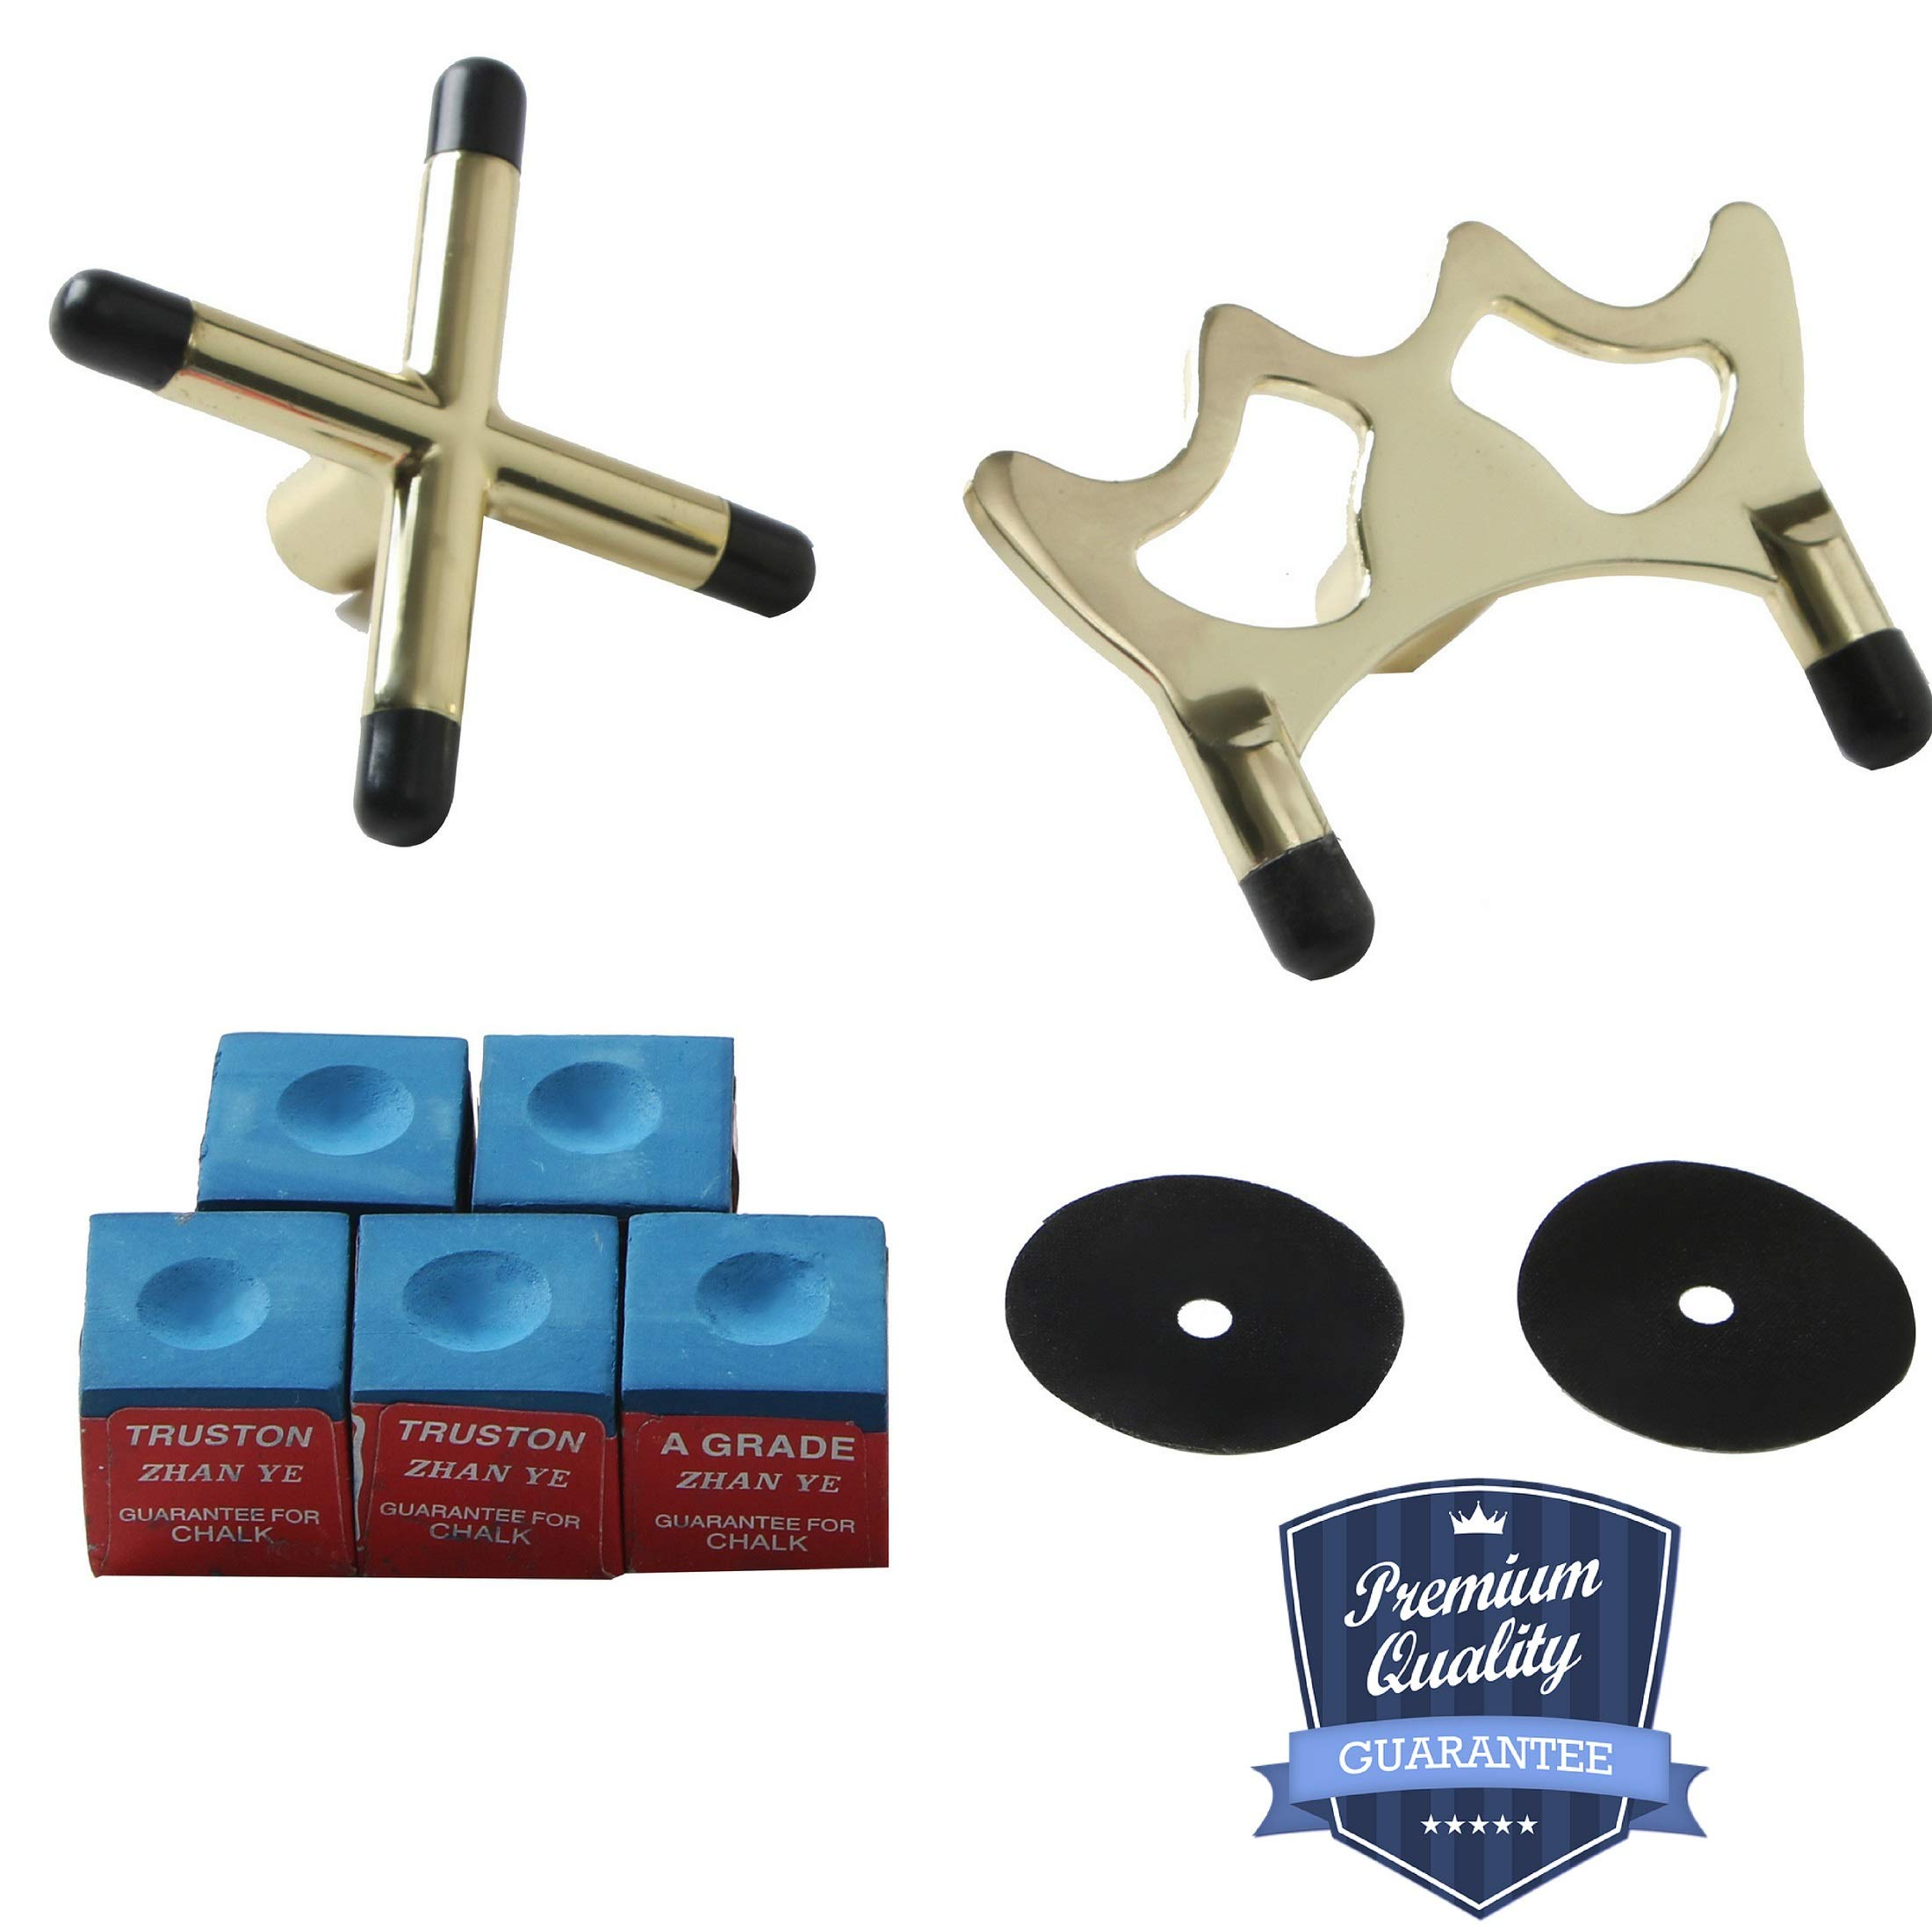 BETTERLINE Billiard Cue Bridge Spider Head and Cue Cross X Rest, 5 Cue Chalk Cubes and 2 Table Spots - Pool Table Game Accessories for Cue Sticks